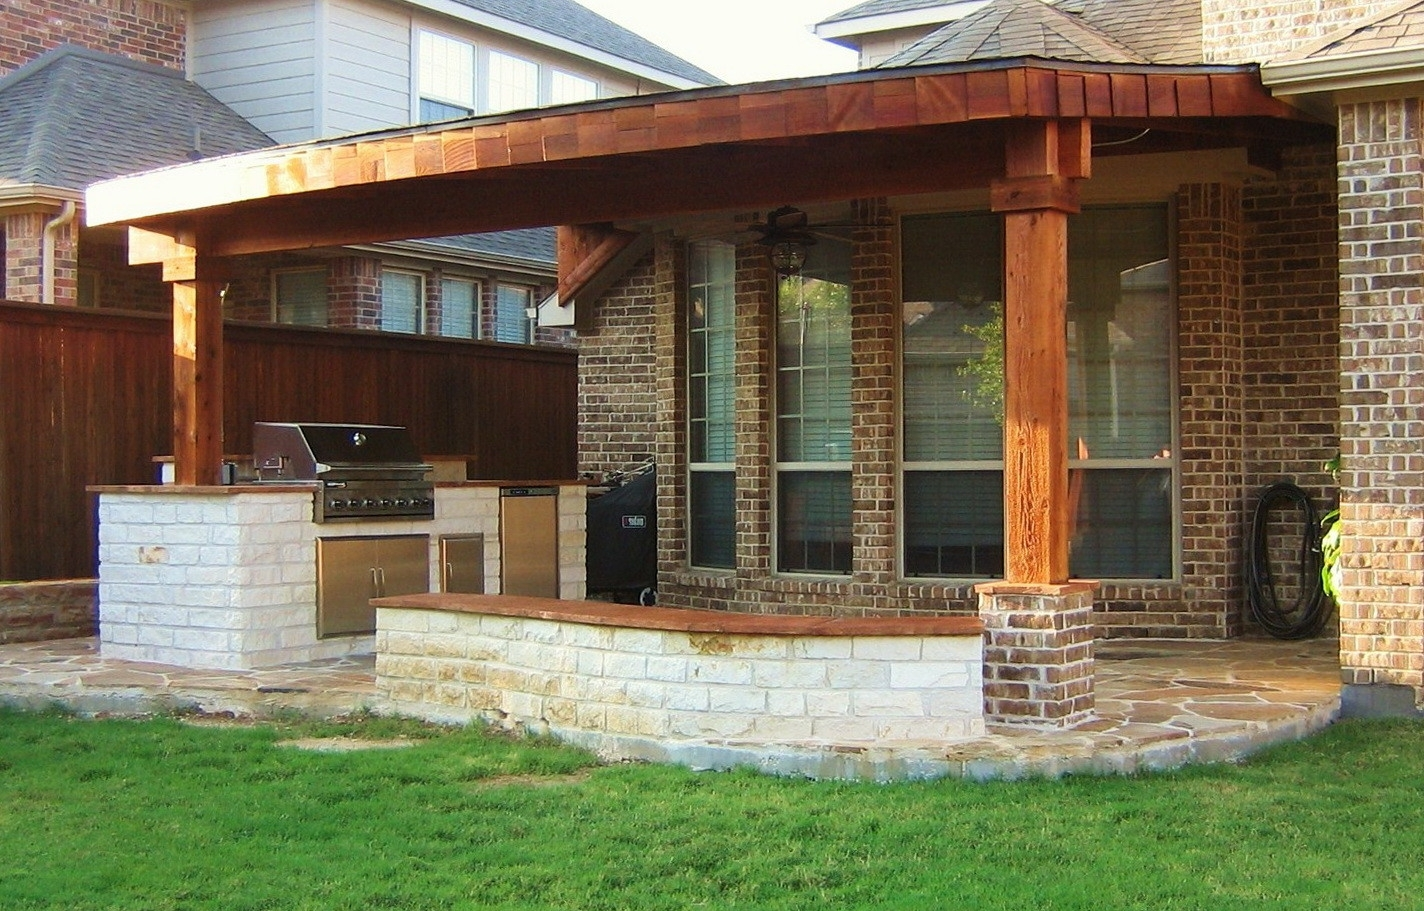 Covered Back Porch Ideas Pictures — Randolph Indoor and ... on Covered Back Porch Ideas id=66685